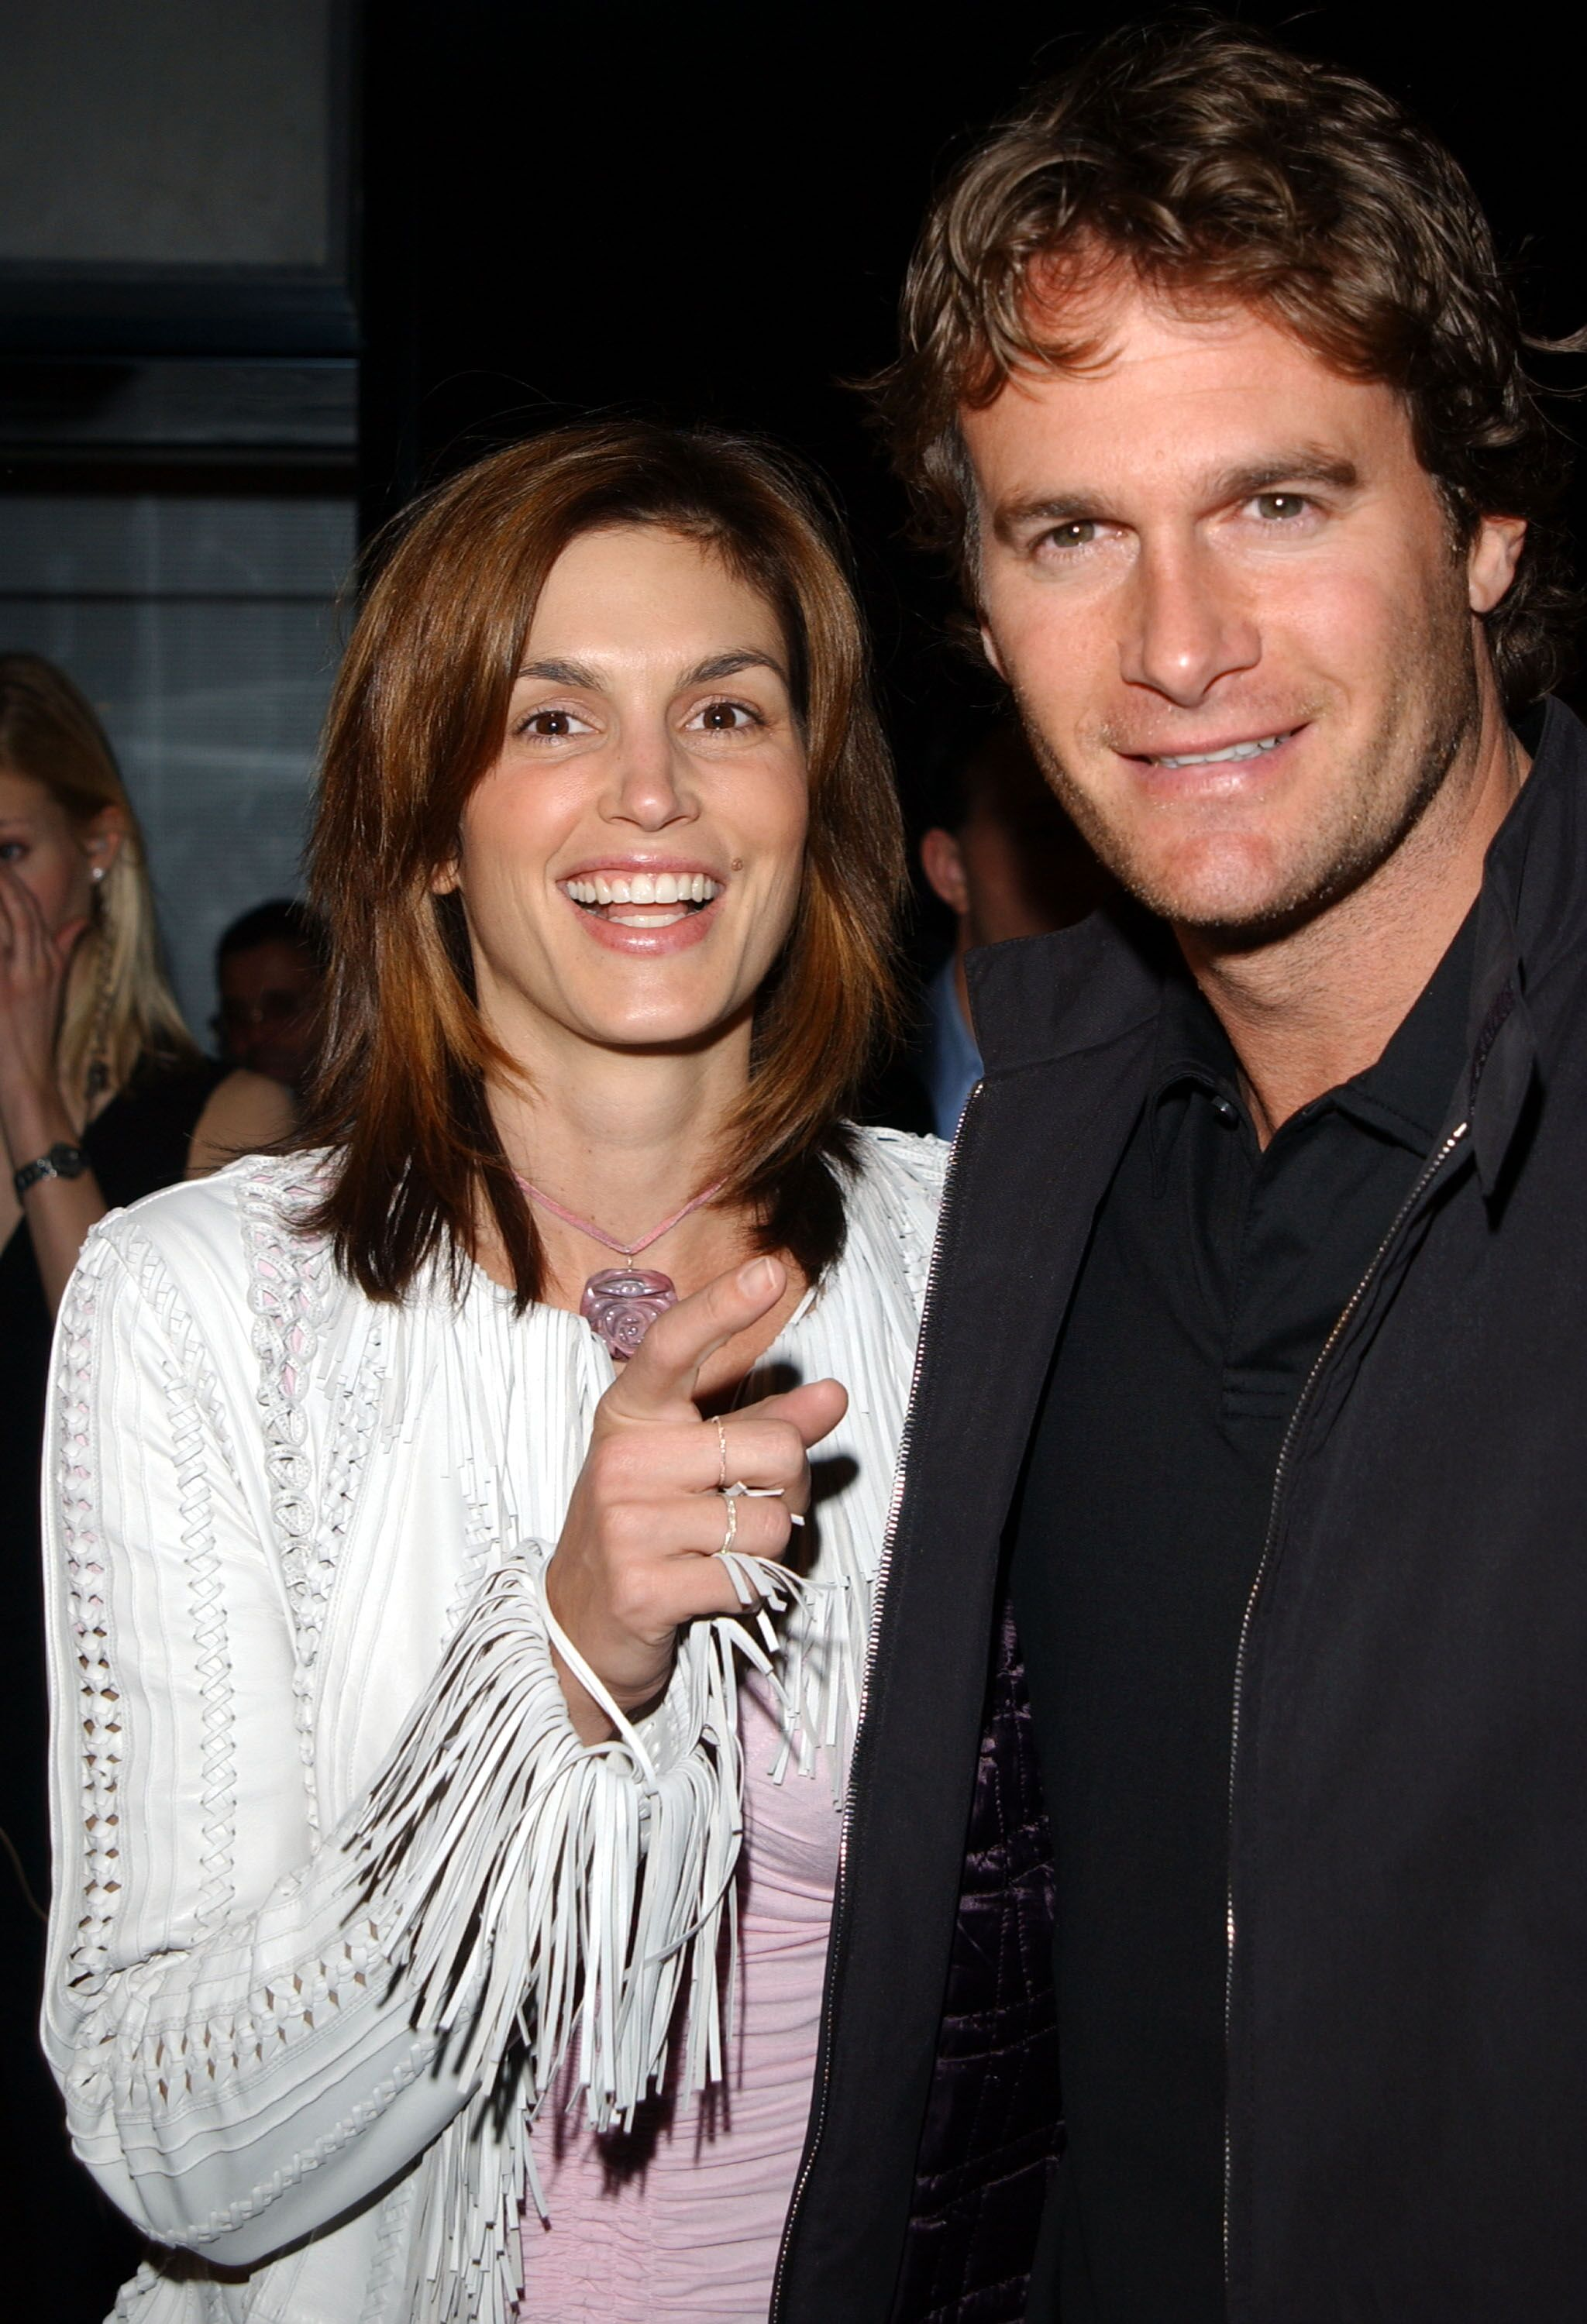 Cindy Crawford and husband Rande Gerber arrive at the Conde Nast Traveler Hot List party. | Source: Getty Images